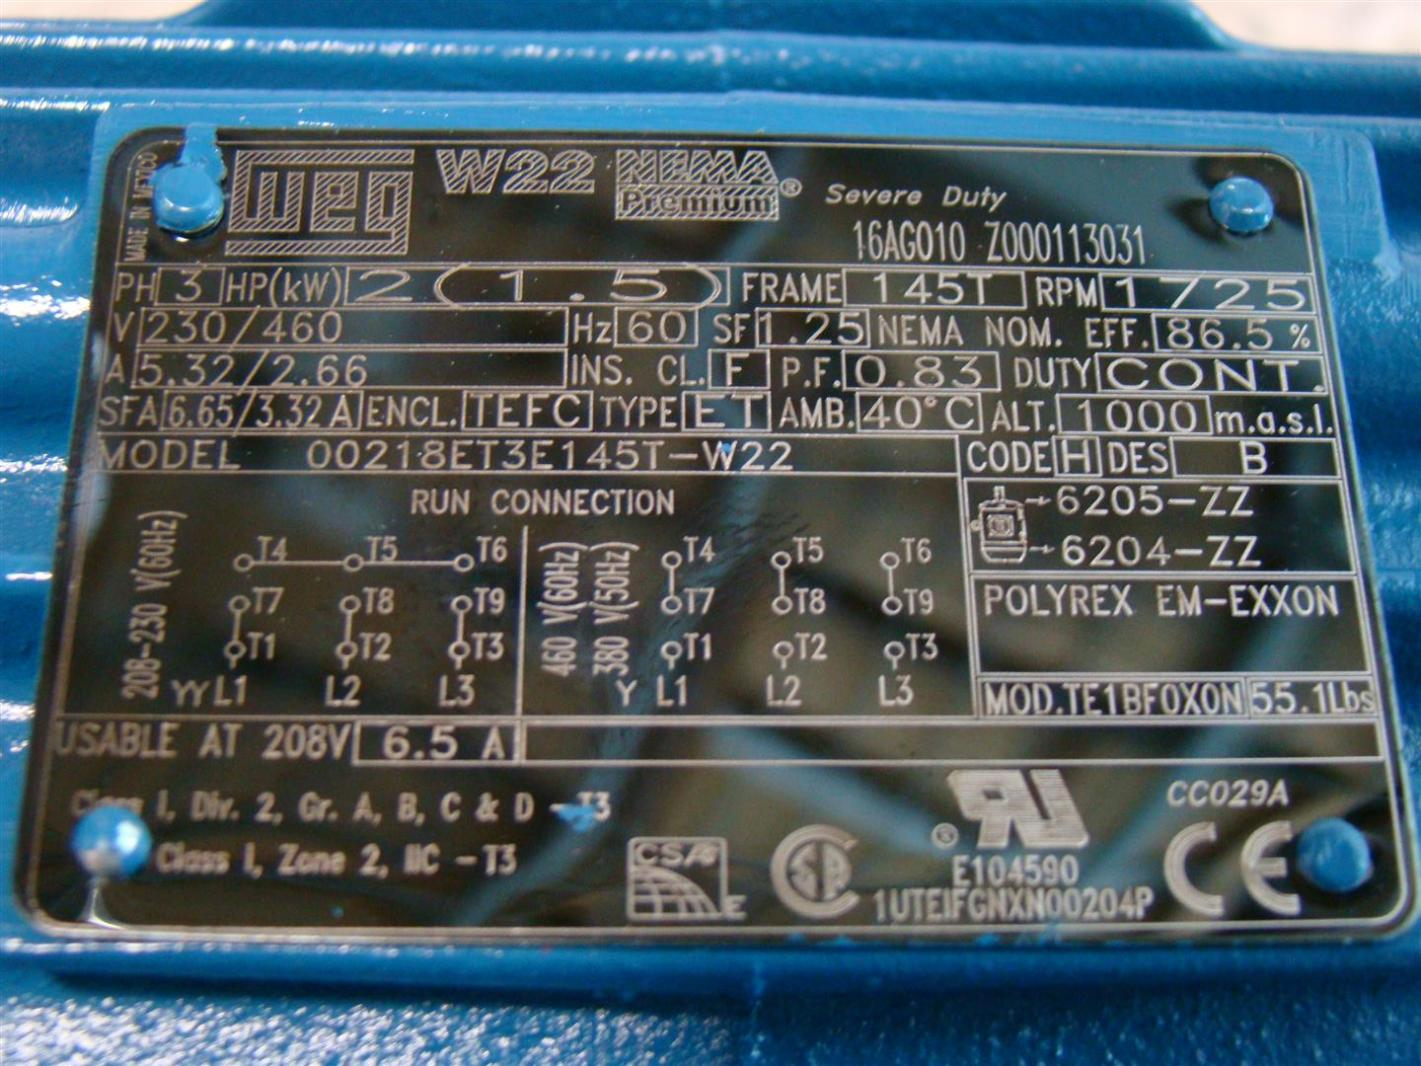 Baldor Single Phase Capacitor Wiring together with Westinghouse 3 Phase Electric Motors together with Teco Westinghouse Electric Motors Wiring Diagram additionally Westinghouse Motor Wiring Diagram in addition Teco Motor Wiring Diagram. on teco westinghouse motors wiring diagram